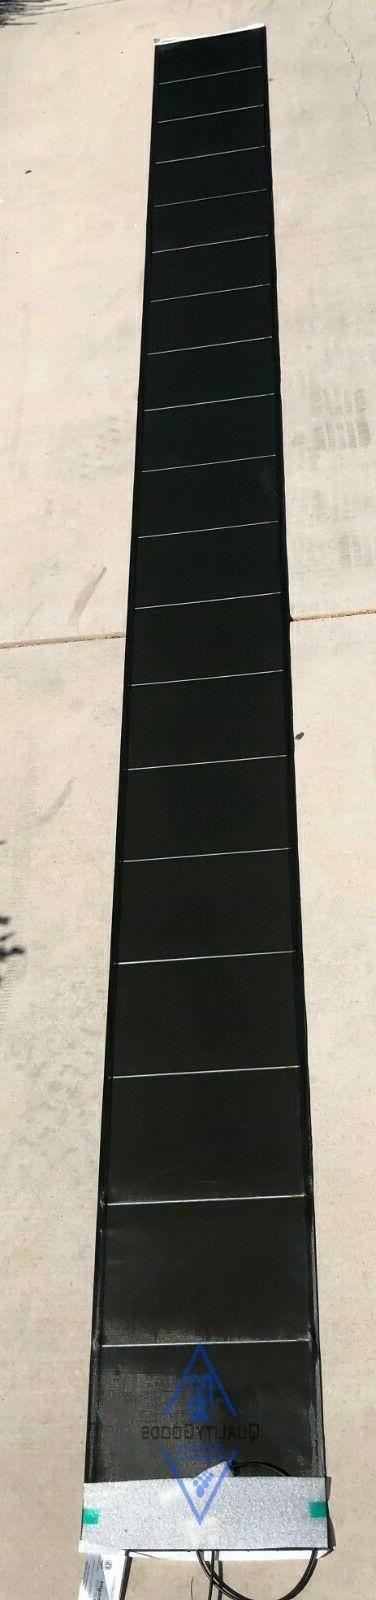 158 in USA panels Free Ship